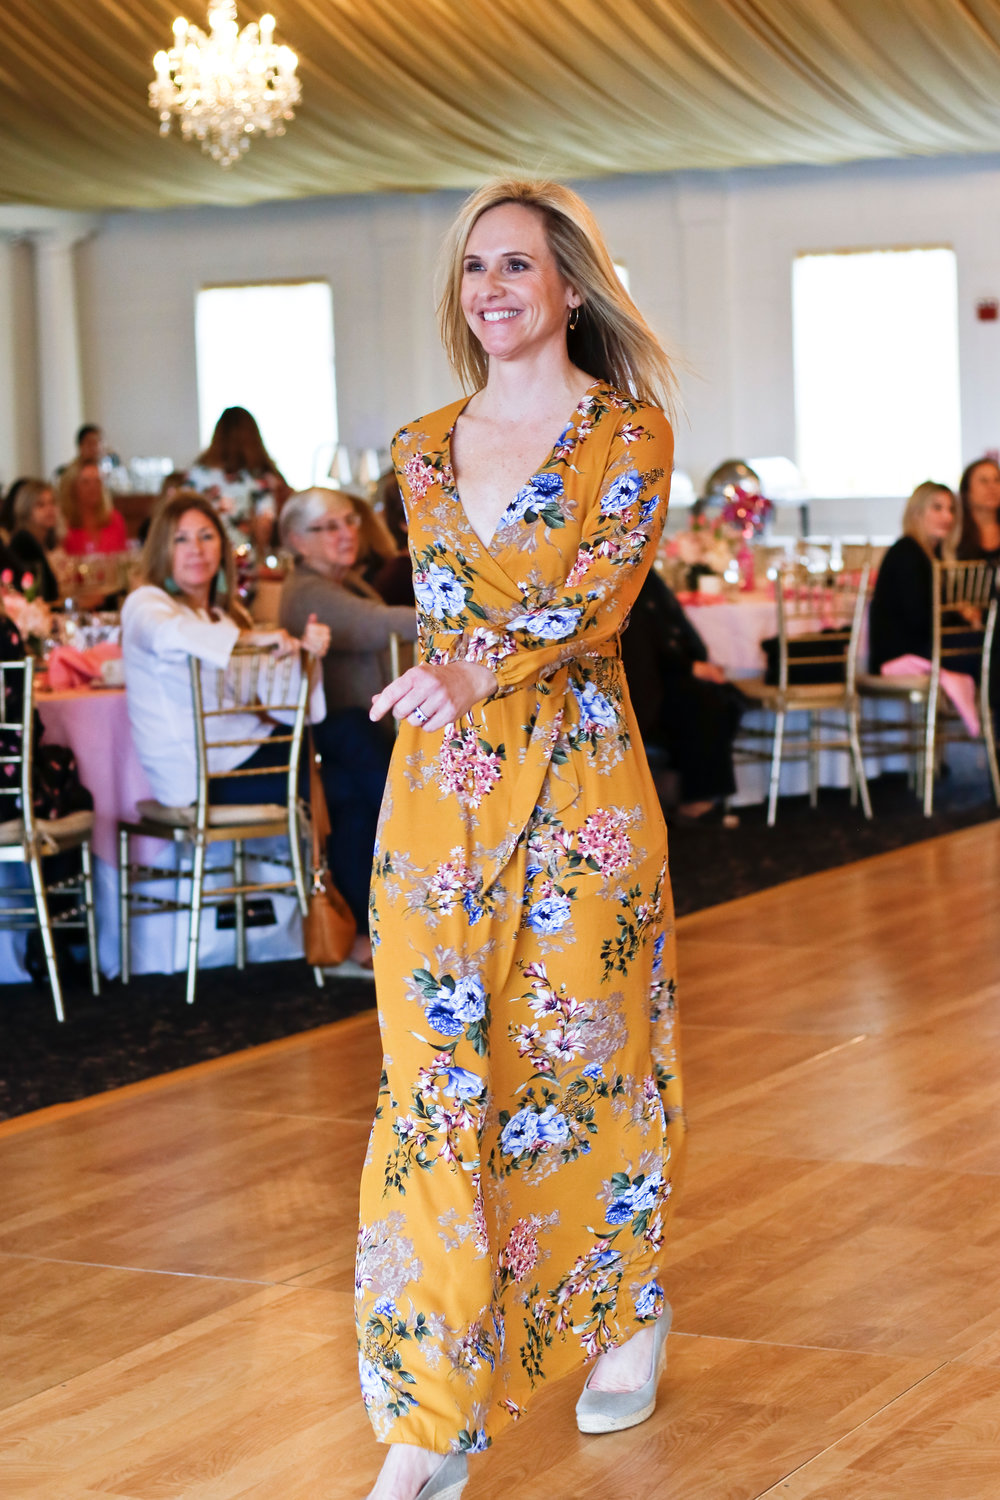 Laura Altman modeled a floral-print dress by Luxe.